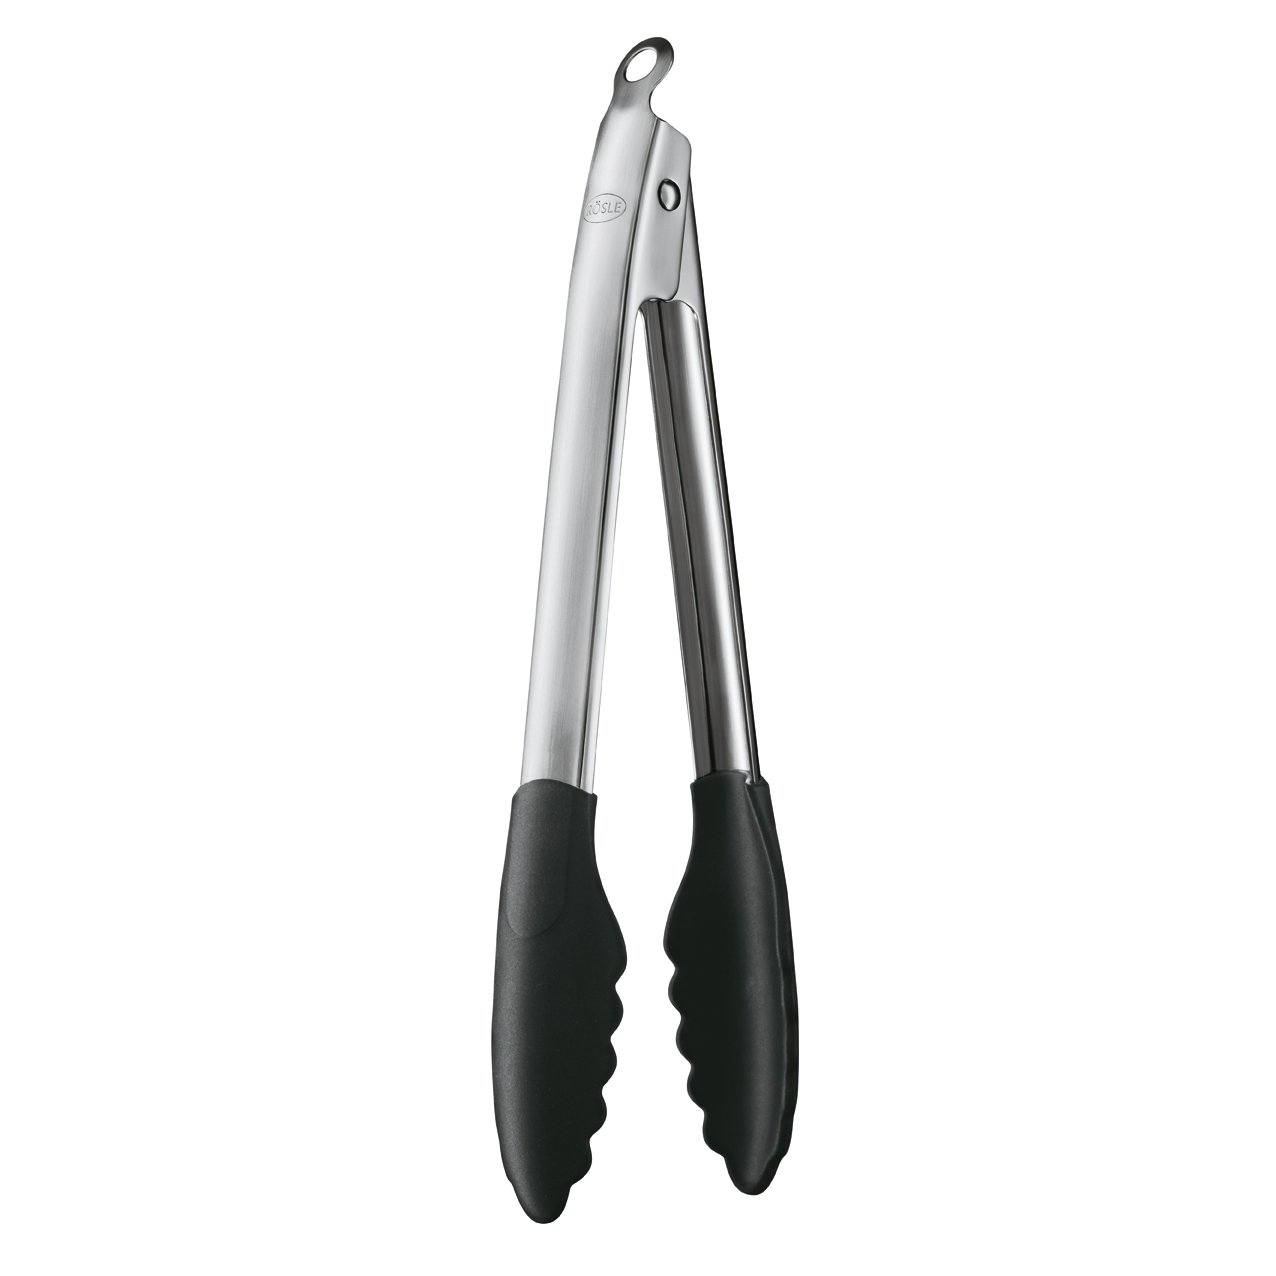 Rosle Stainless Steel Lock & Release Silicone Coated Cooking Tongs, 12-inch